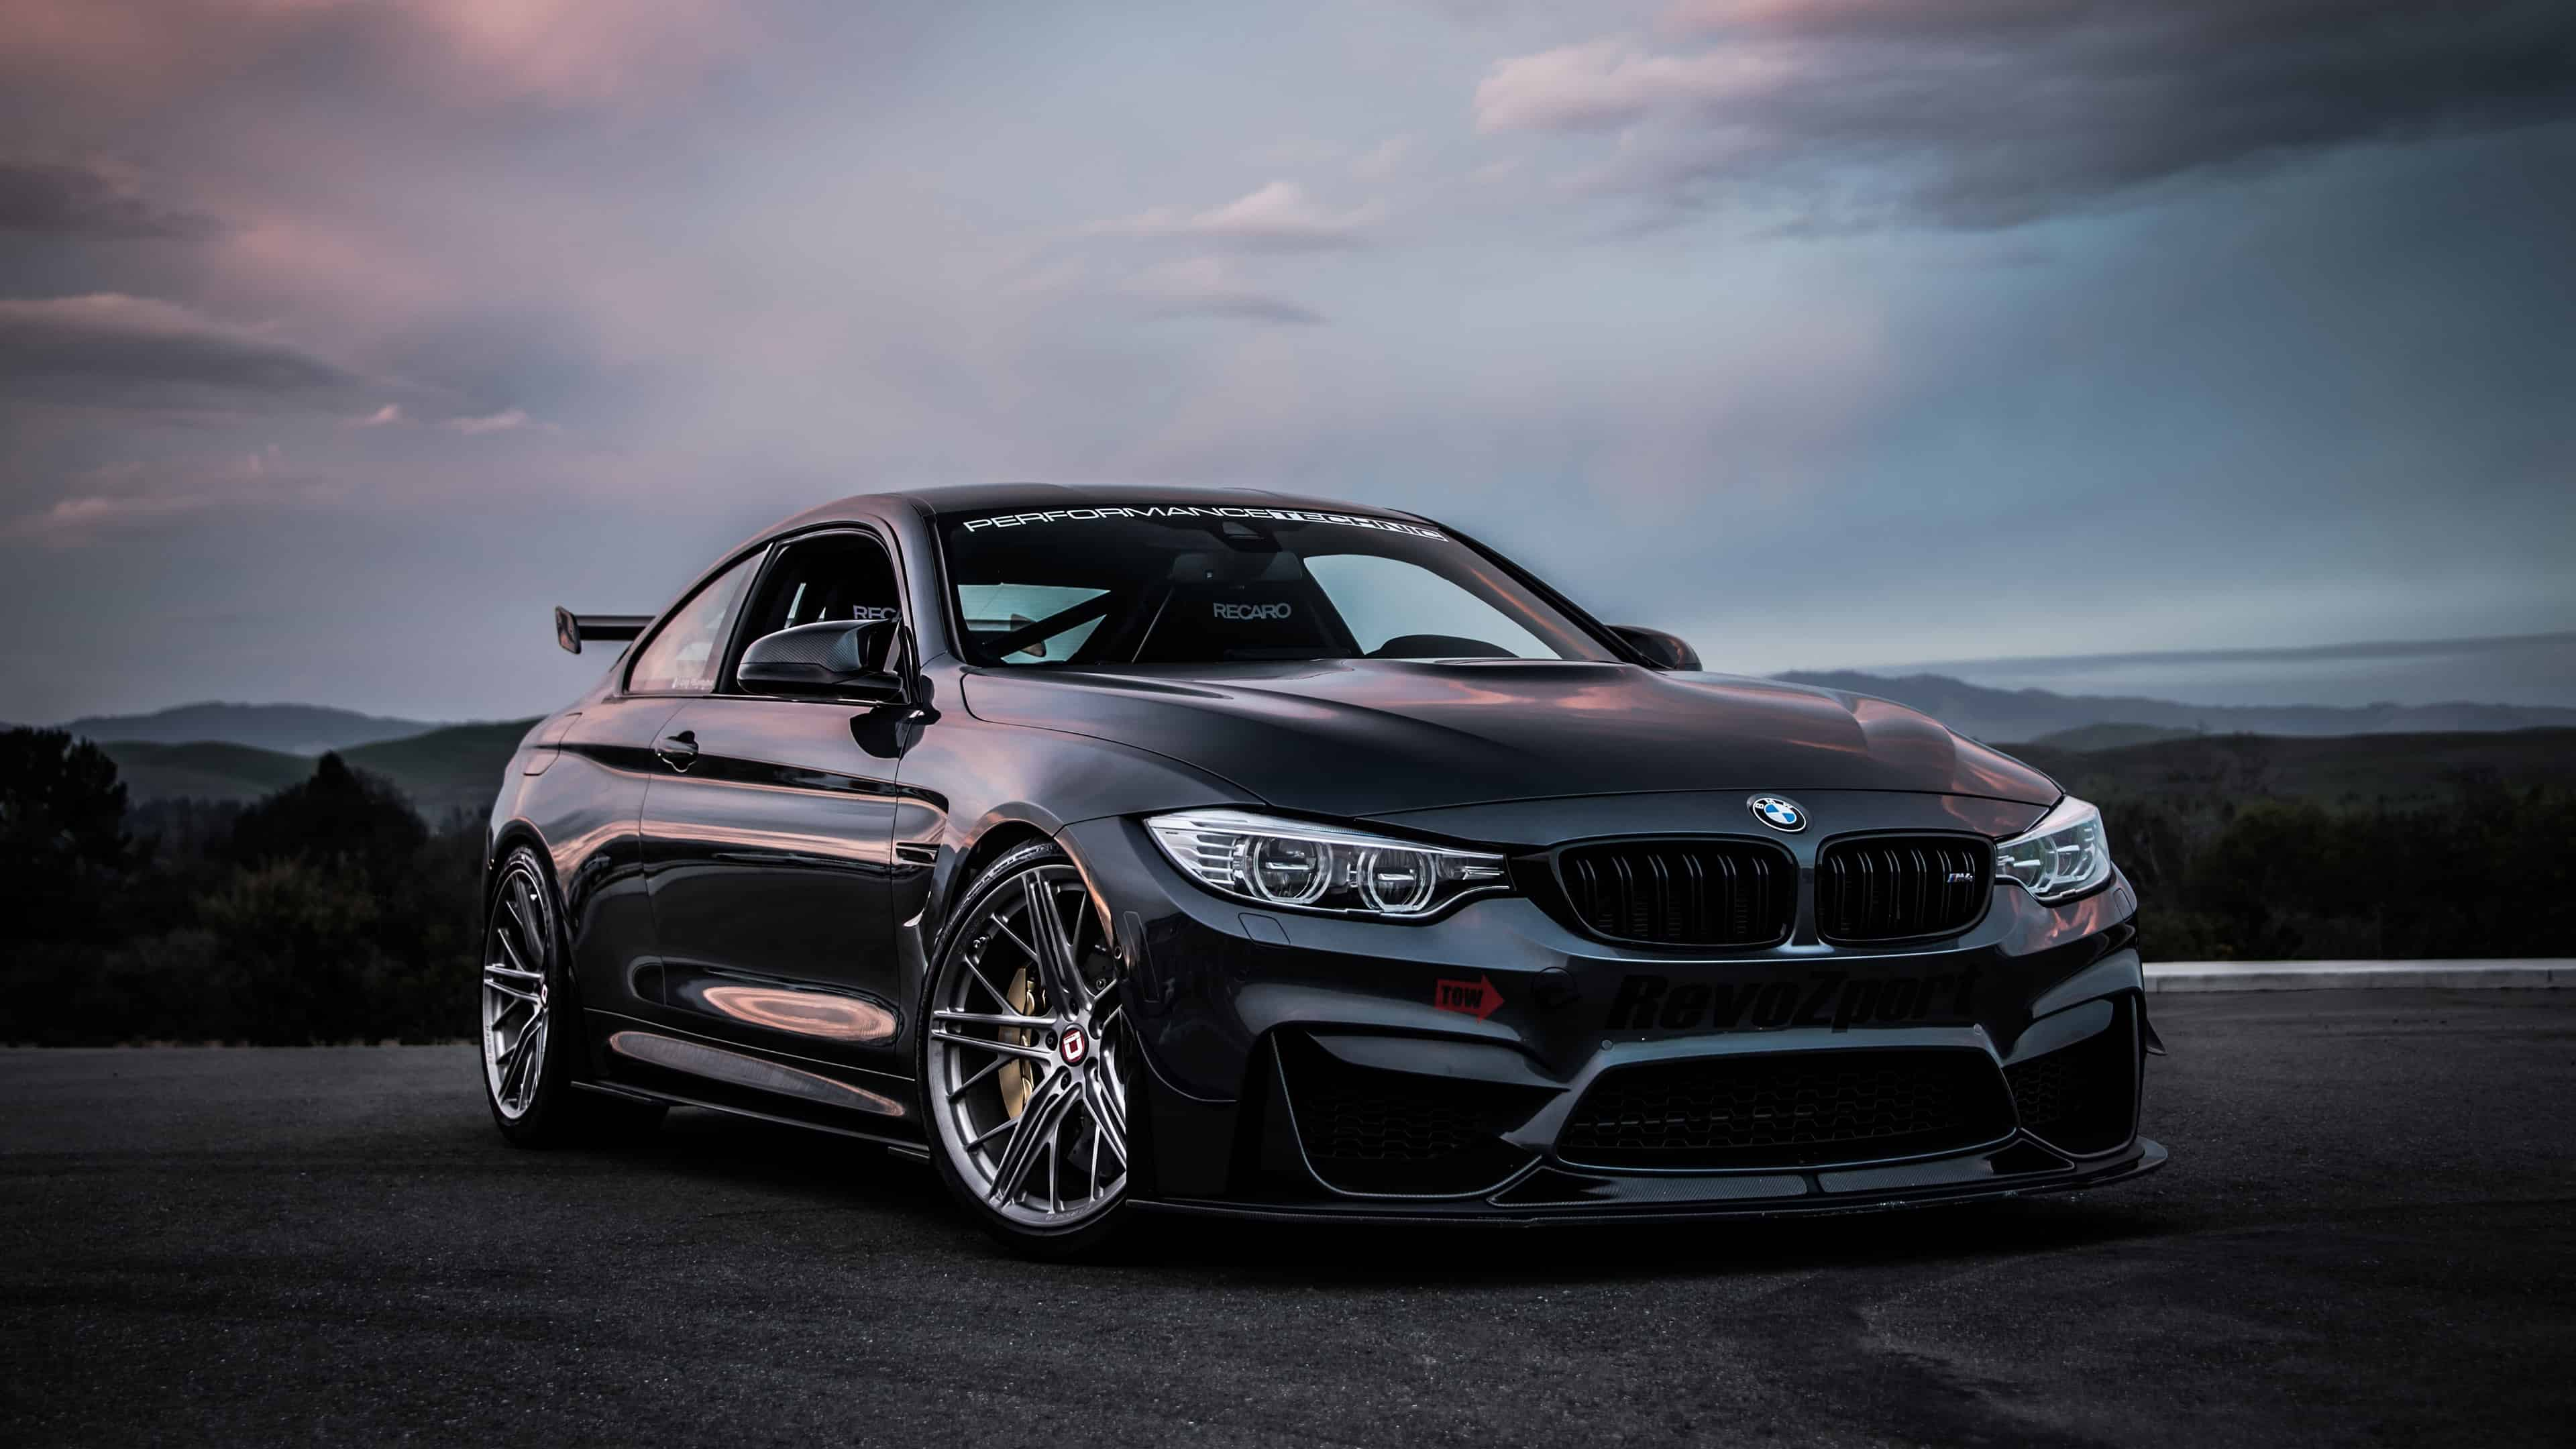 bmw m4 uhd 4k wallpaper